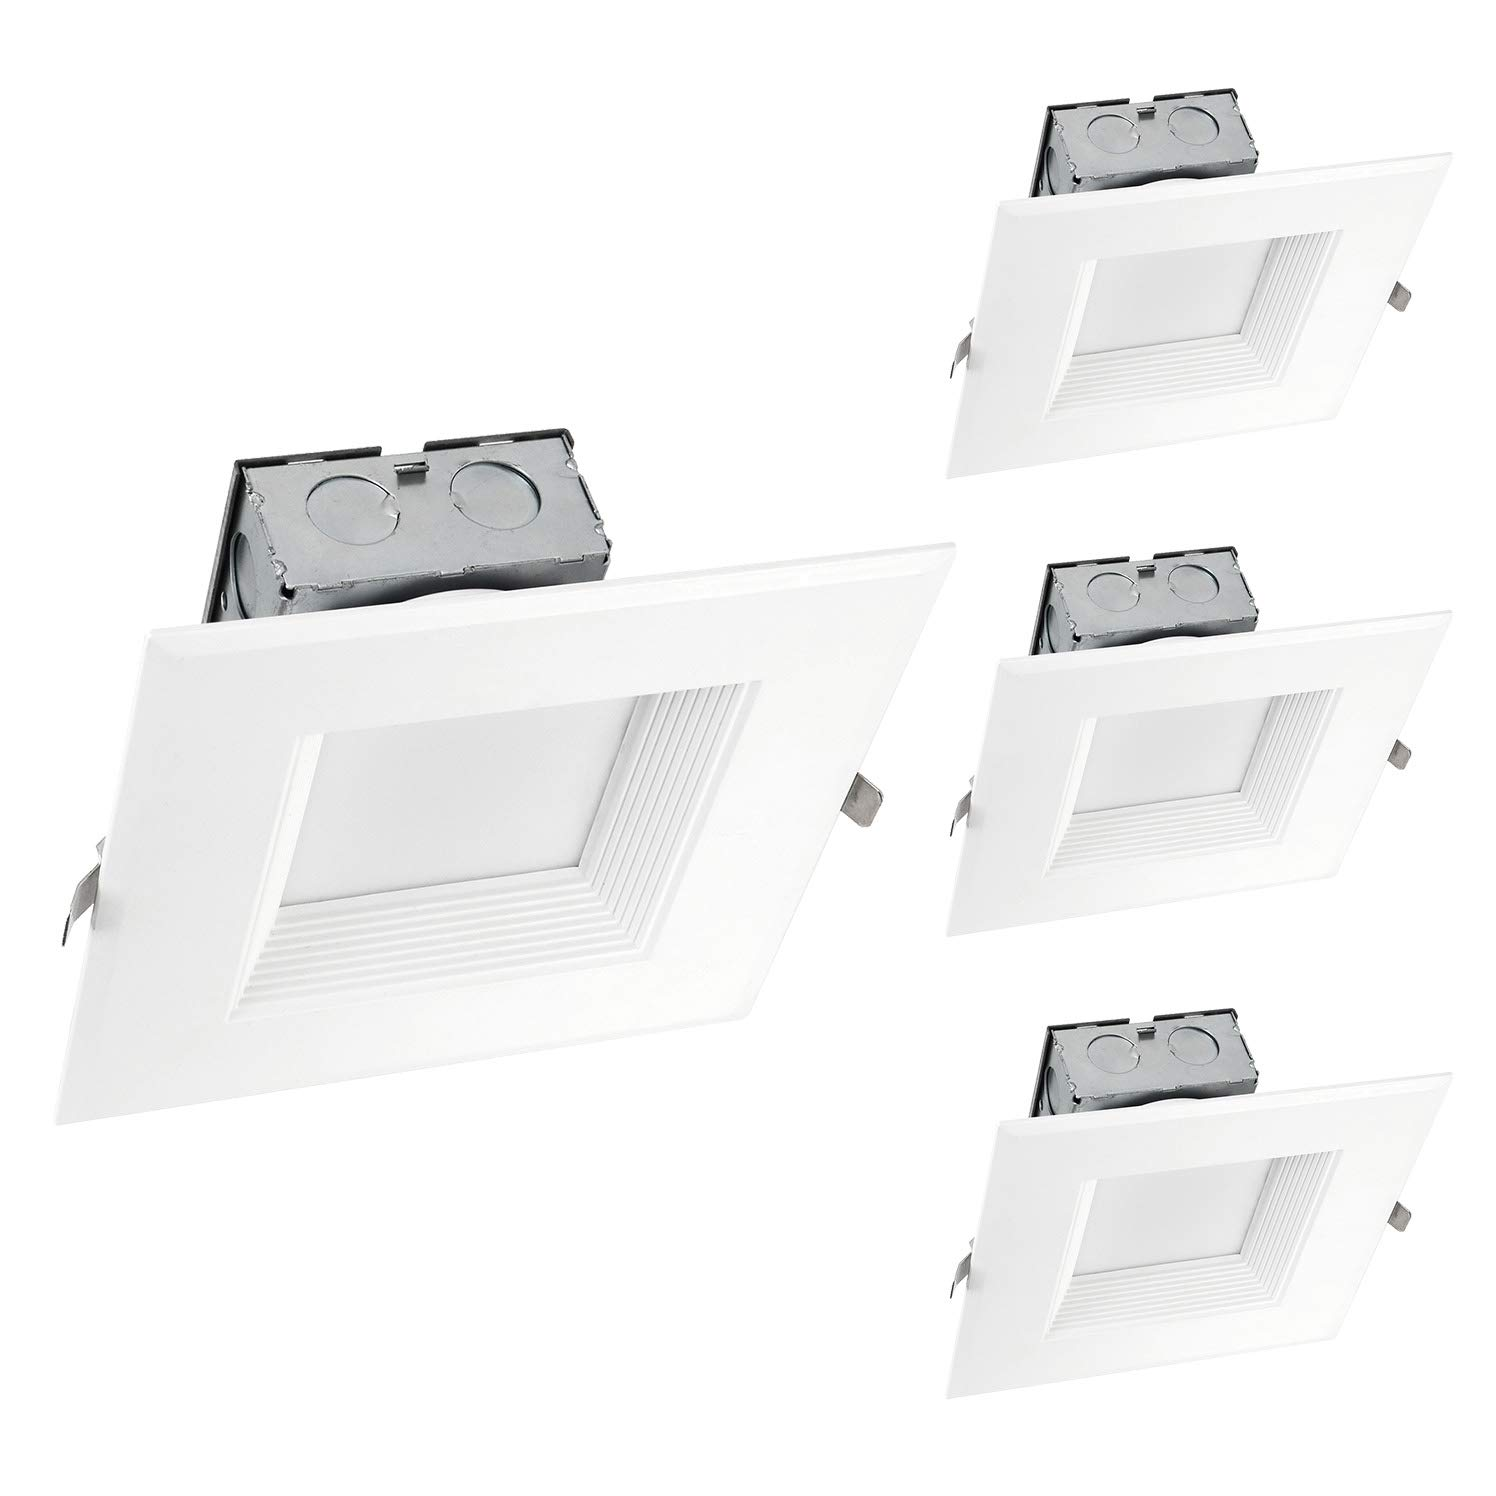 OSTWIN (4 Pack) 6 Inch Square LED Recessed Ceiling Light Fixture, Dimmable, Downlighter Junction Box, IC Rated, 15W (120 Watt Replacement) 3000K, 1000Lm, No Can Needed, ETL and Energy Star Listed